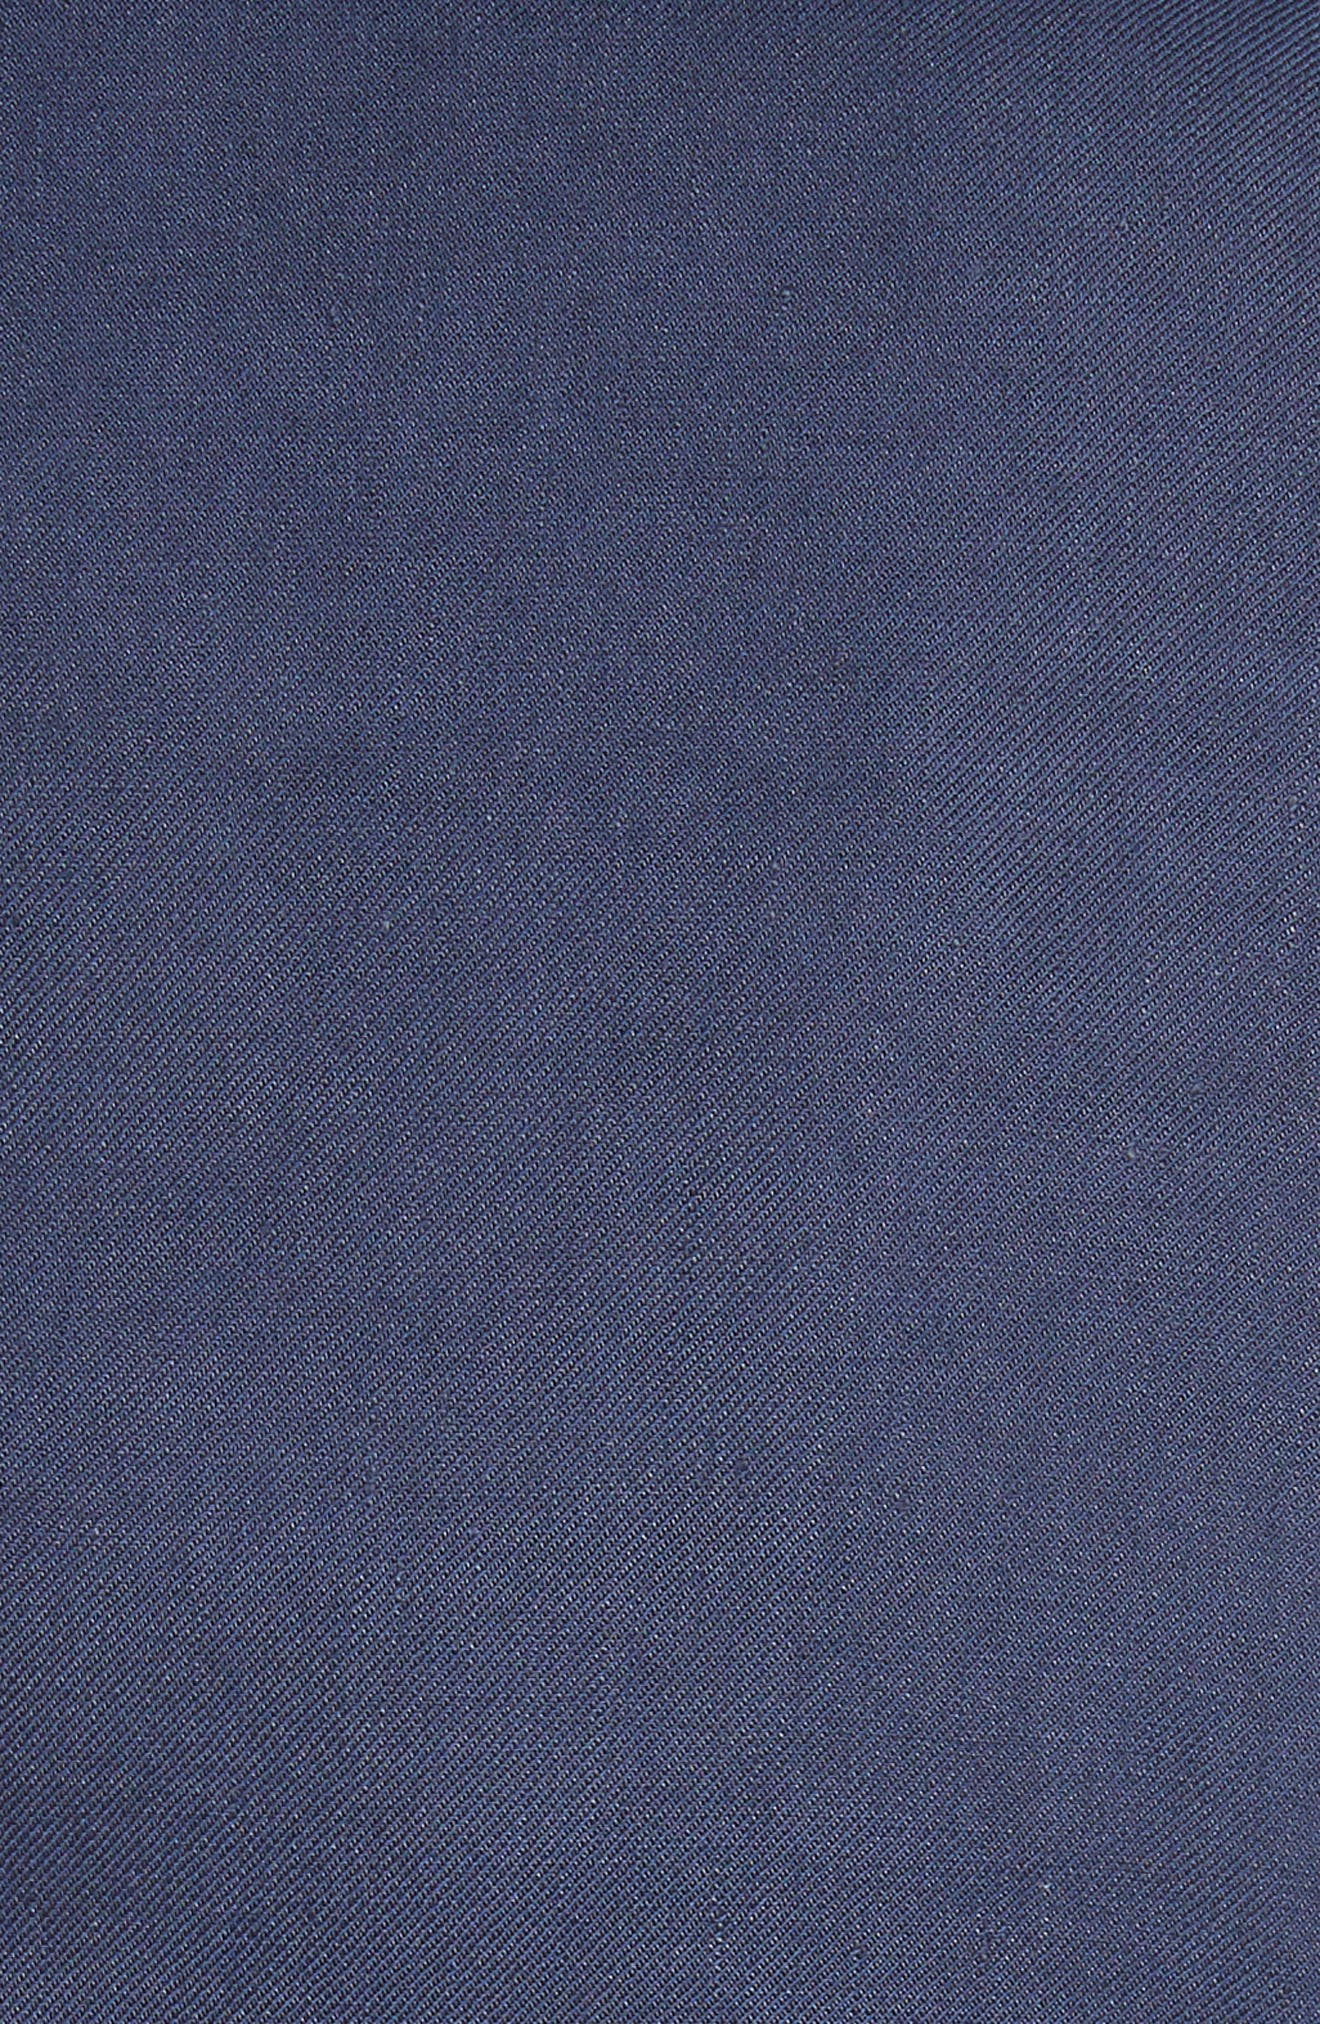 Piped Linen & Cotton Blend Blazer,                             Alternate thumbnail 6, color,                             Navy